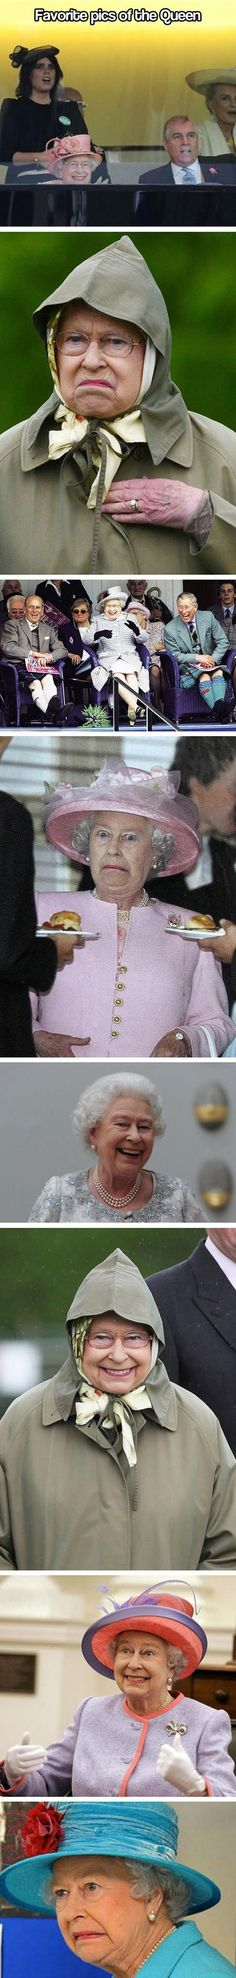 Favorite pictures of the Queen of England. This made me think of Barry, @Marielle de Geest de Geest Assad